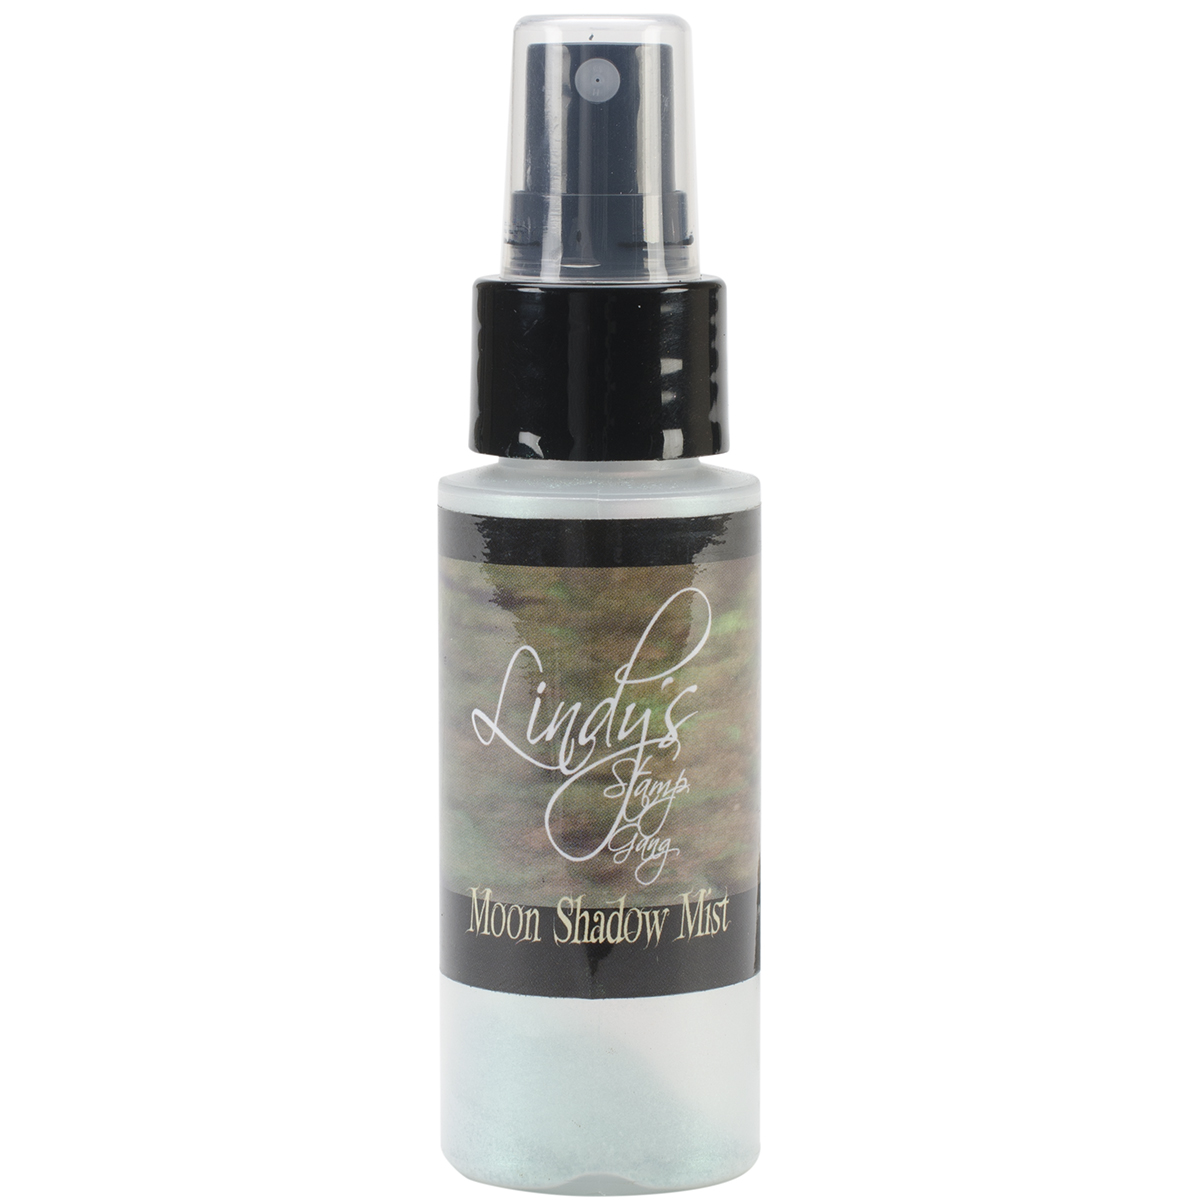 Lindy's Stamp Gang Moon Shadow Mist 2oz Bottle-Mystic Malachite